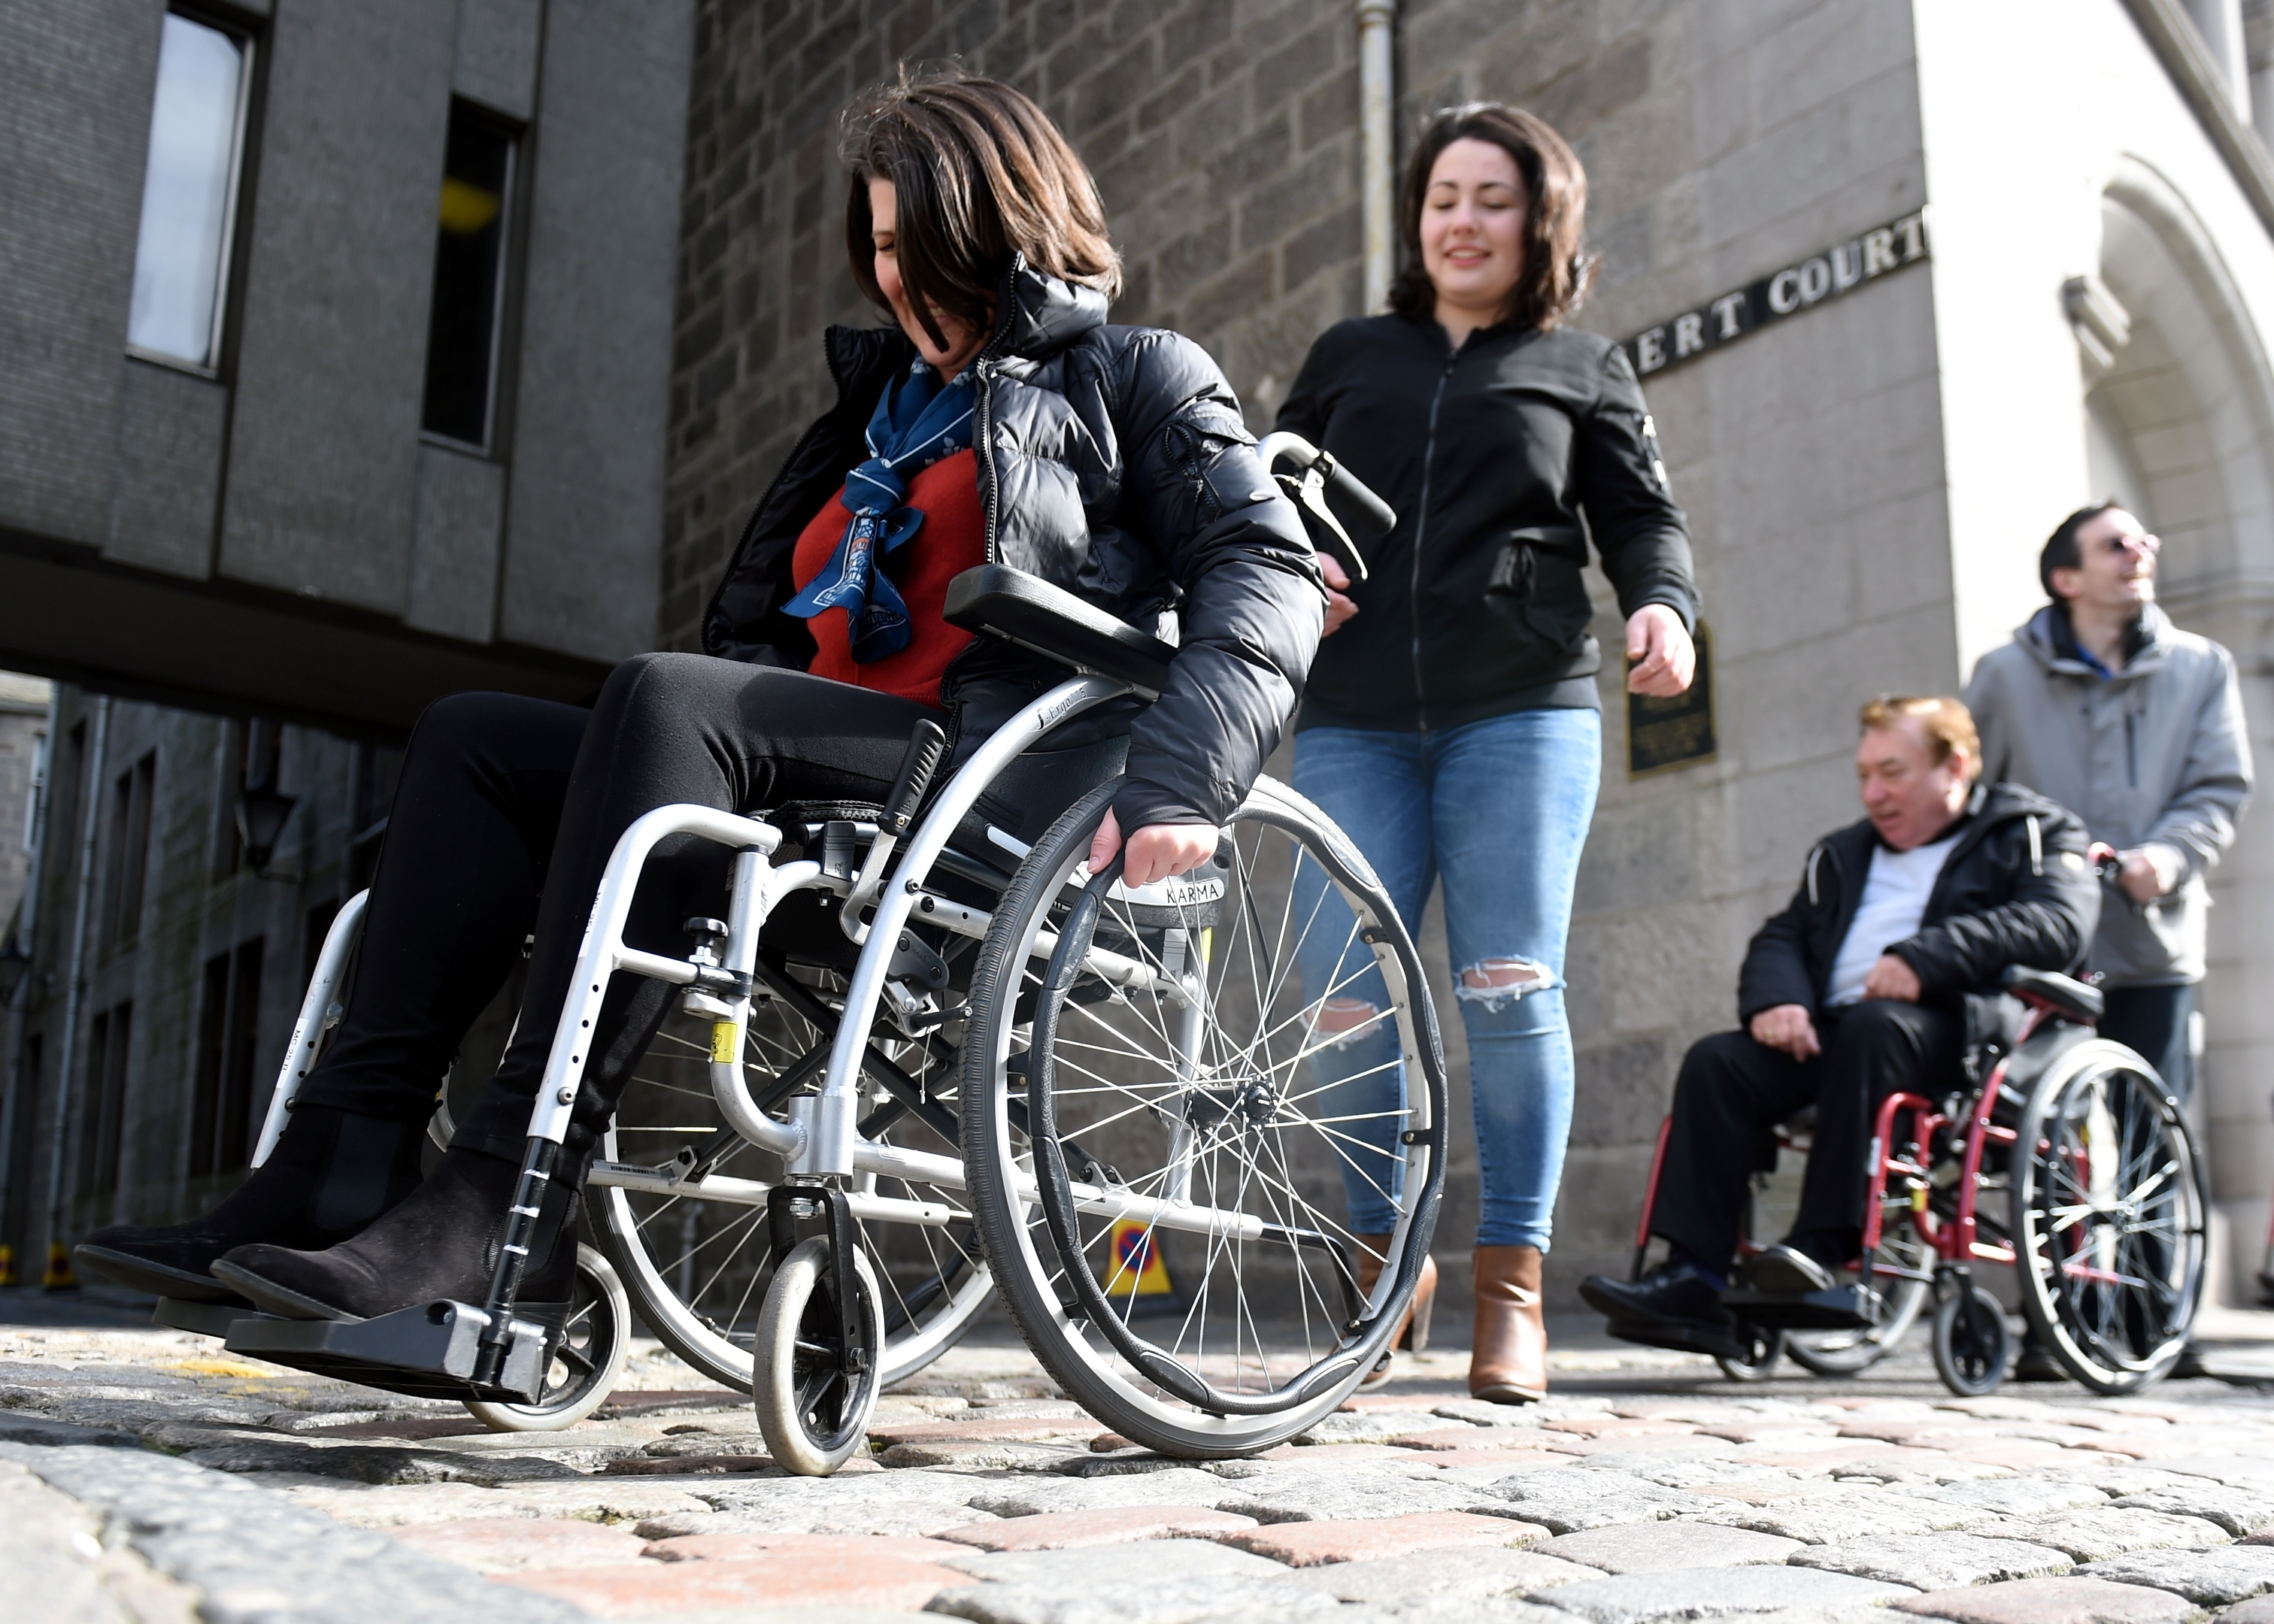 Future Choices challenged Aberdeen City Councillors to travel from Union Square shopping centre to Aberdeen Town House in a wheelchair. Pictured are Councillor Marie Boulton and Councillor Len Ironside on Broad Street.